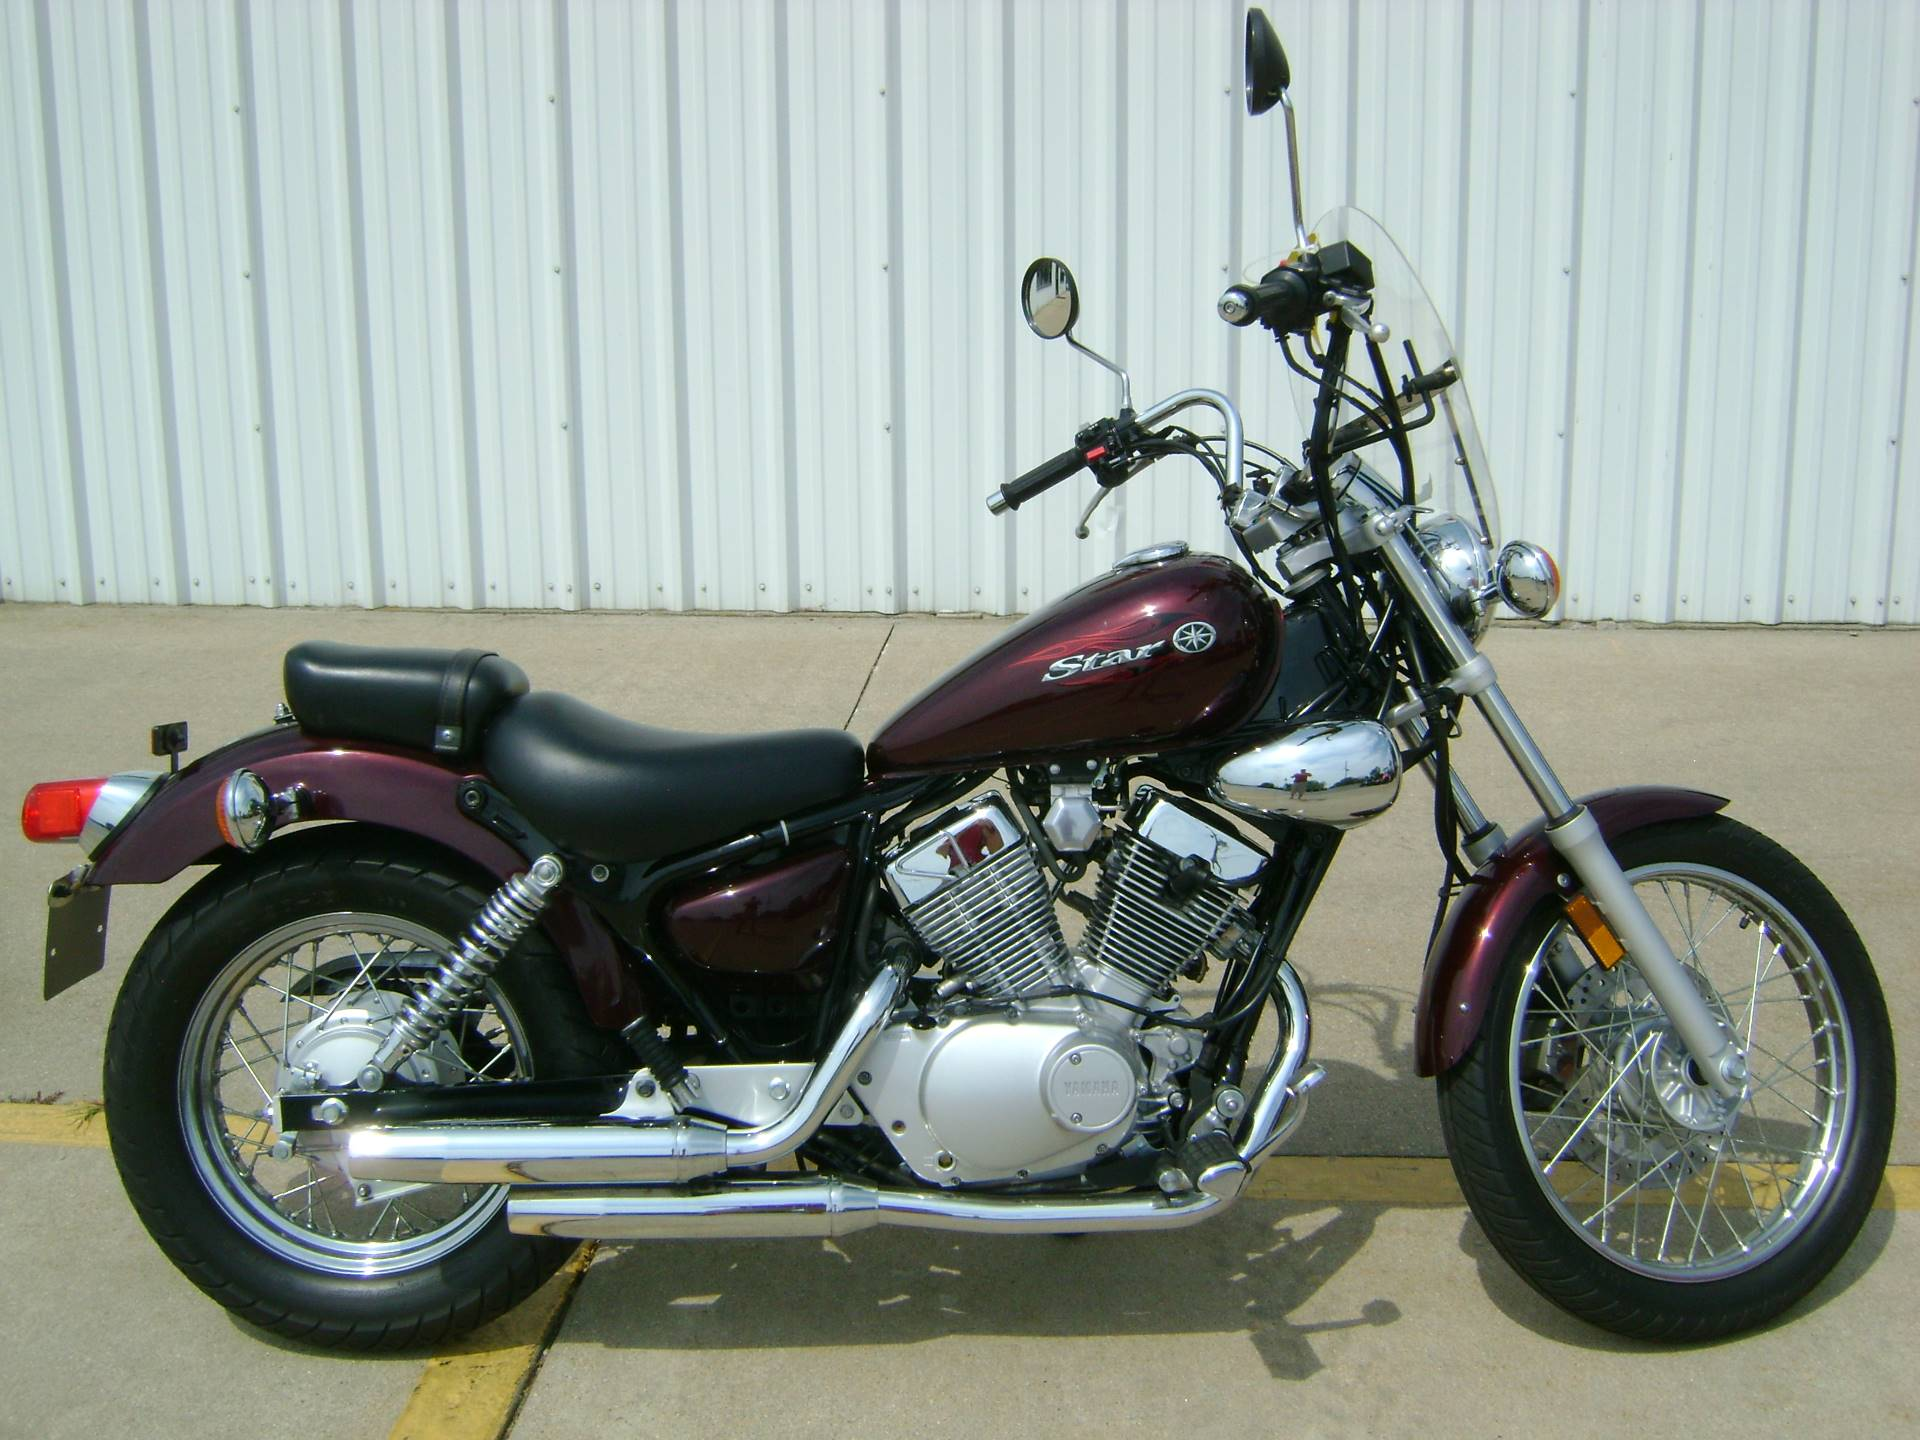 Used 2008 Yamaha V Star 250 Motorcycles in Freeport, IL | Stock ...